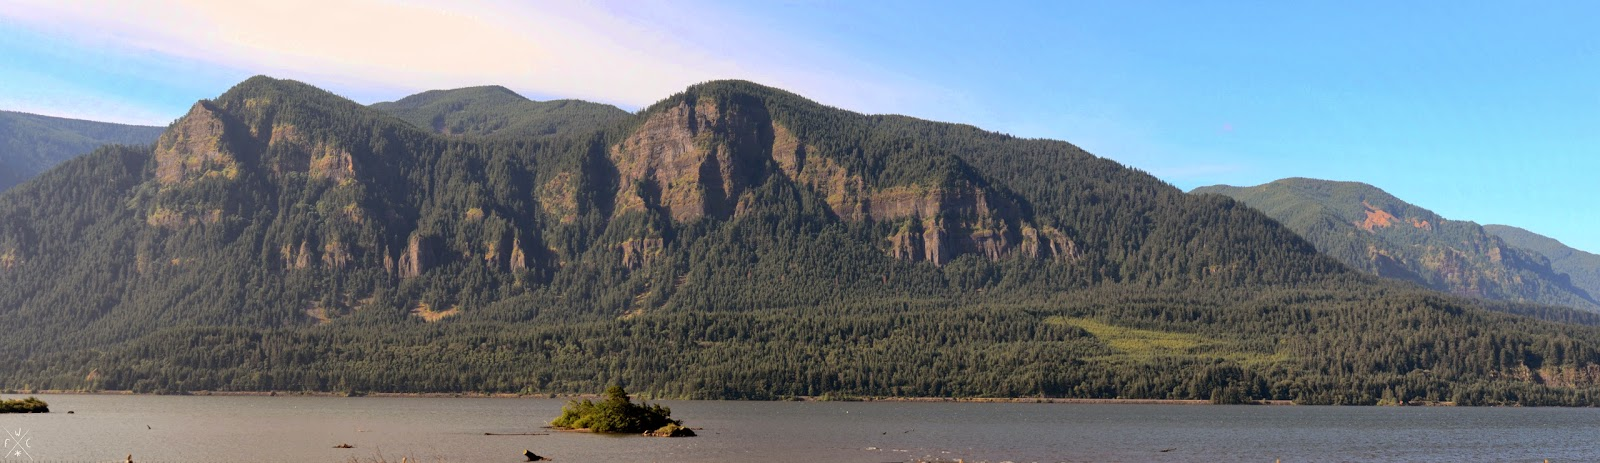 Columbia River, Oregon, USA